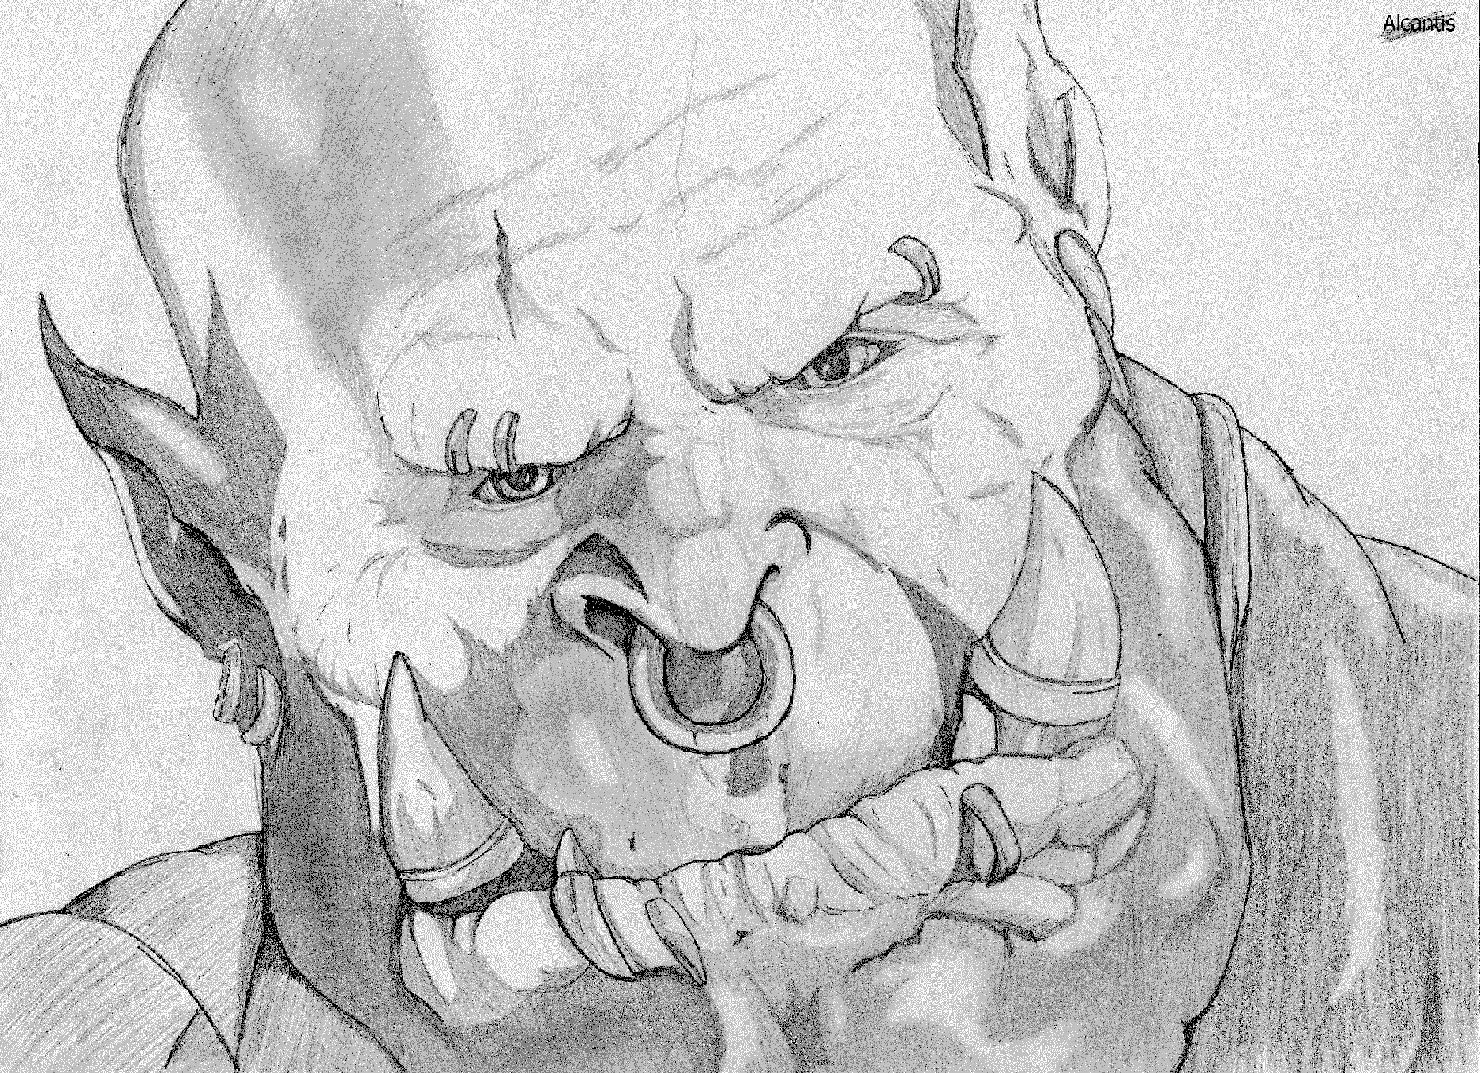 Drawn orc sketch Orc Speed Orc YouTube Speed